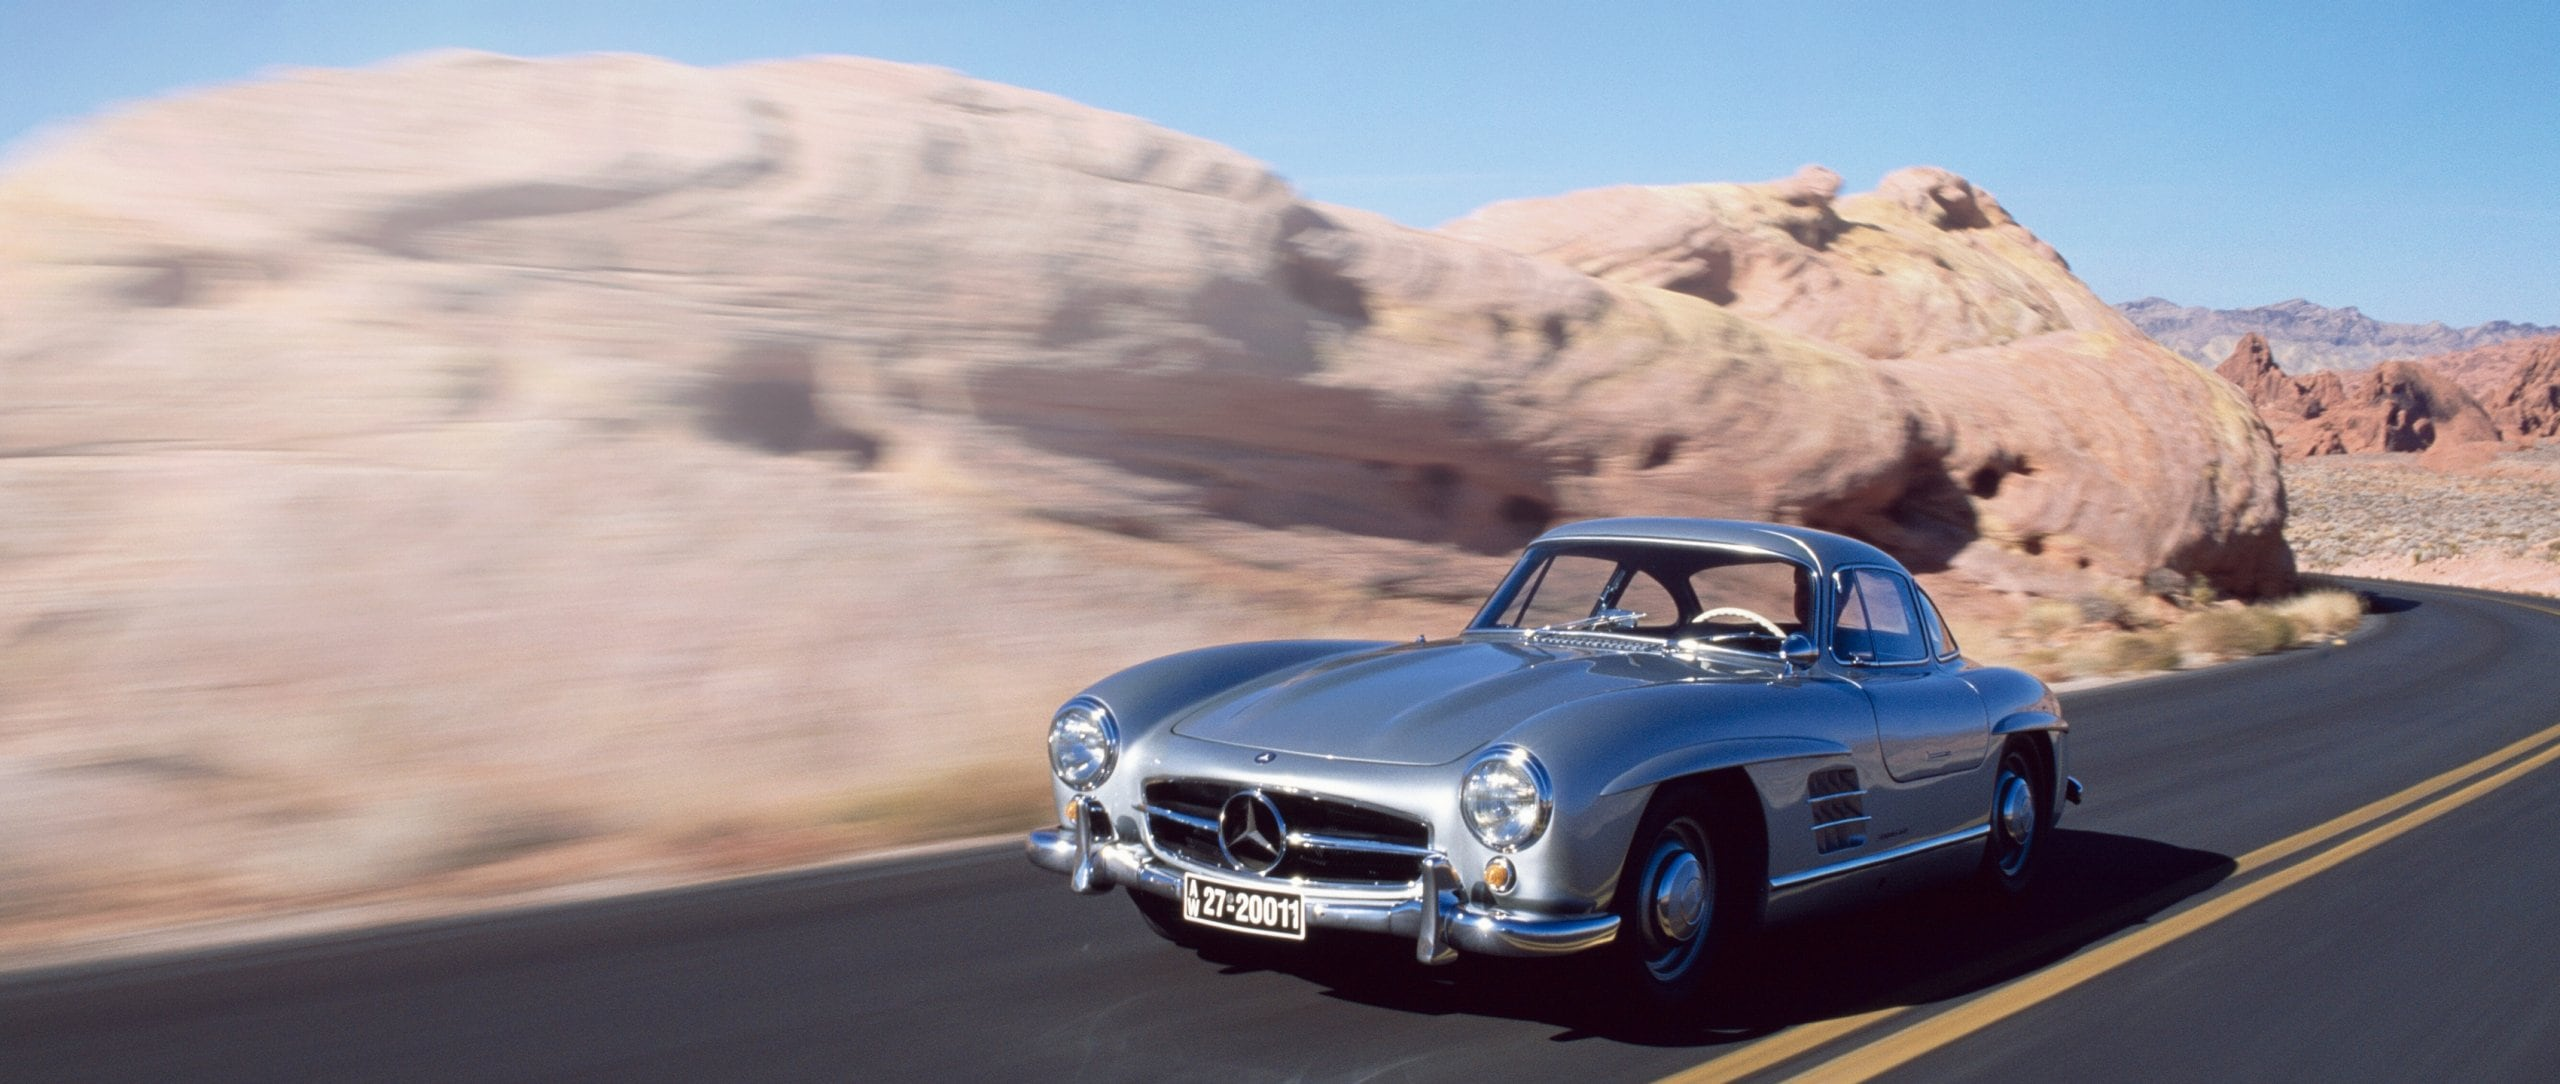 "Mercedes-Benz 300 SL ""Gullwing"" ."